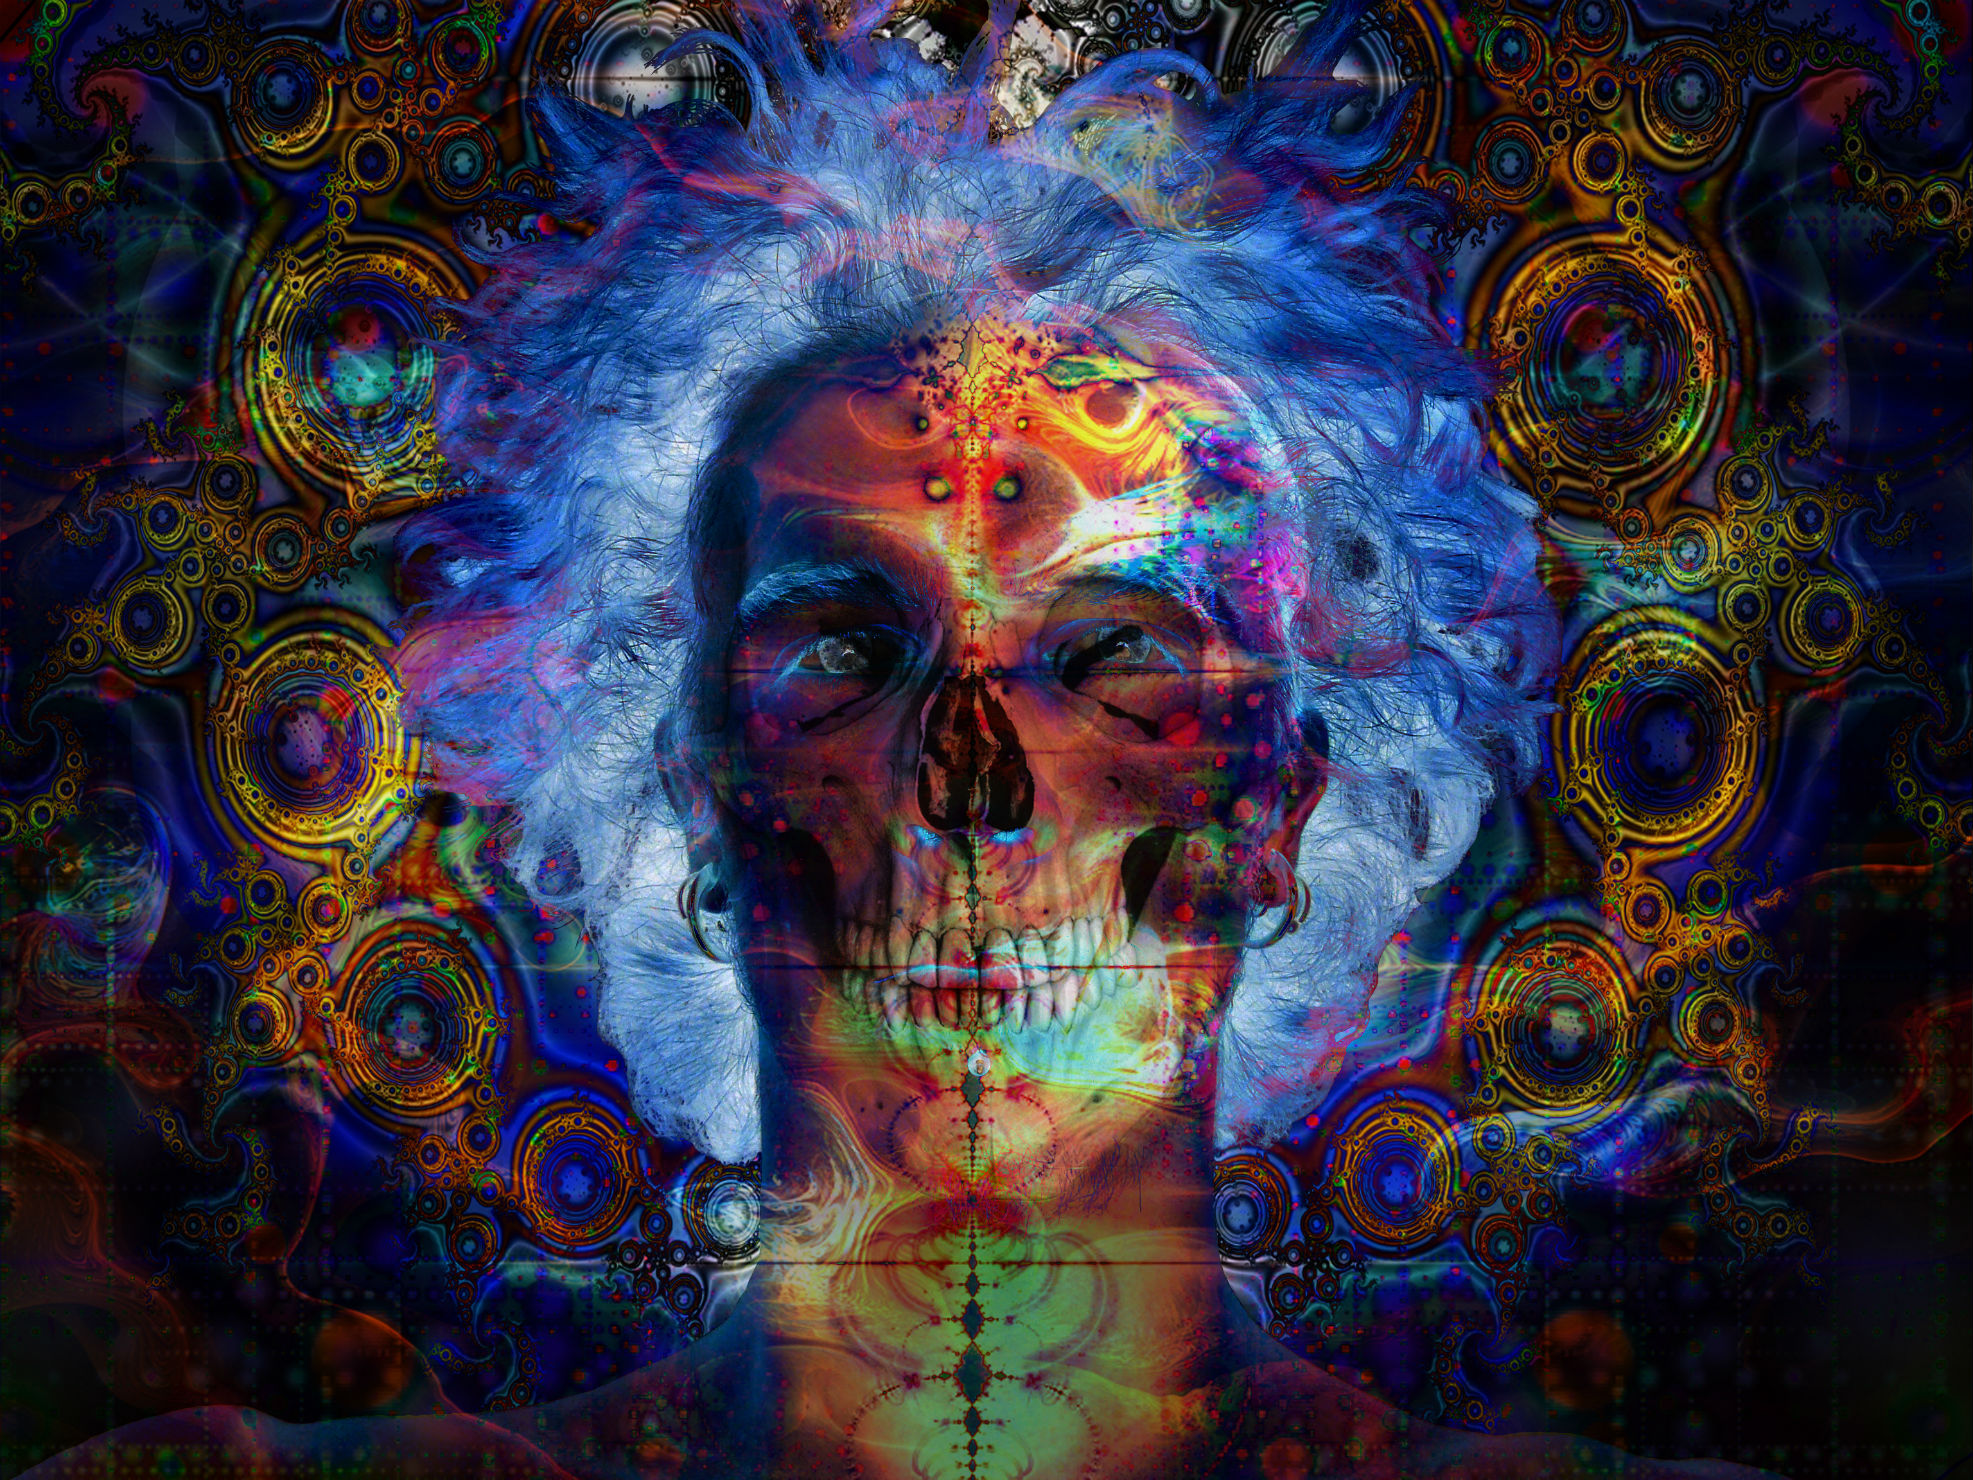 HD Wallpaper Background ID236140 1973x1480 Artistic Psychedelic 1973x1480